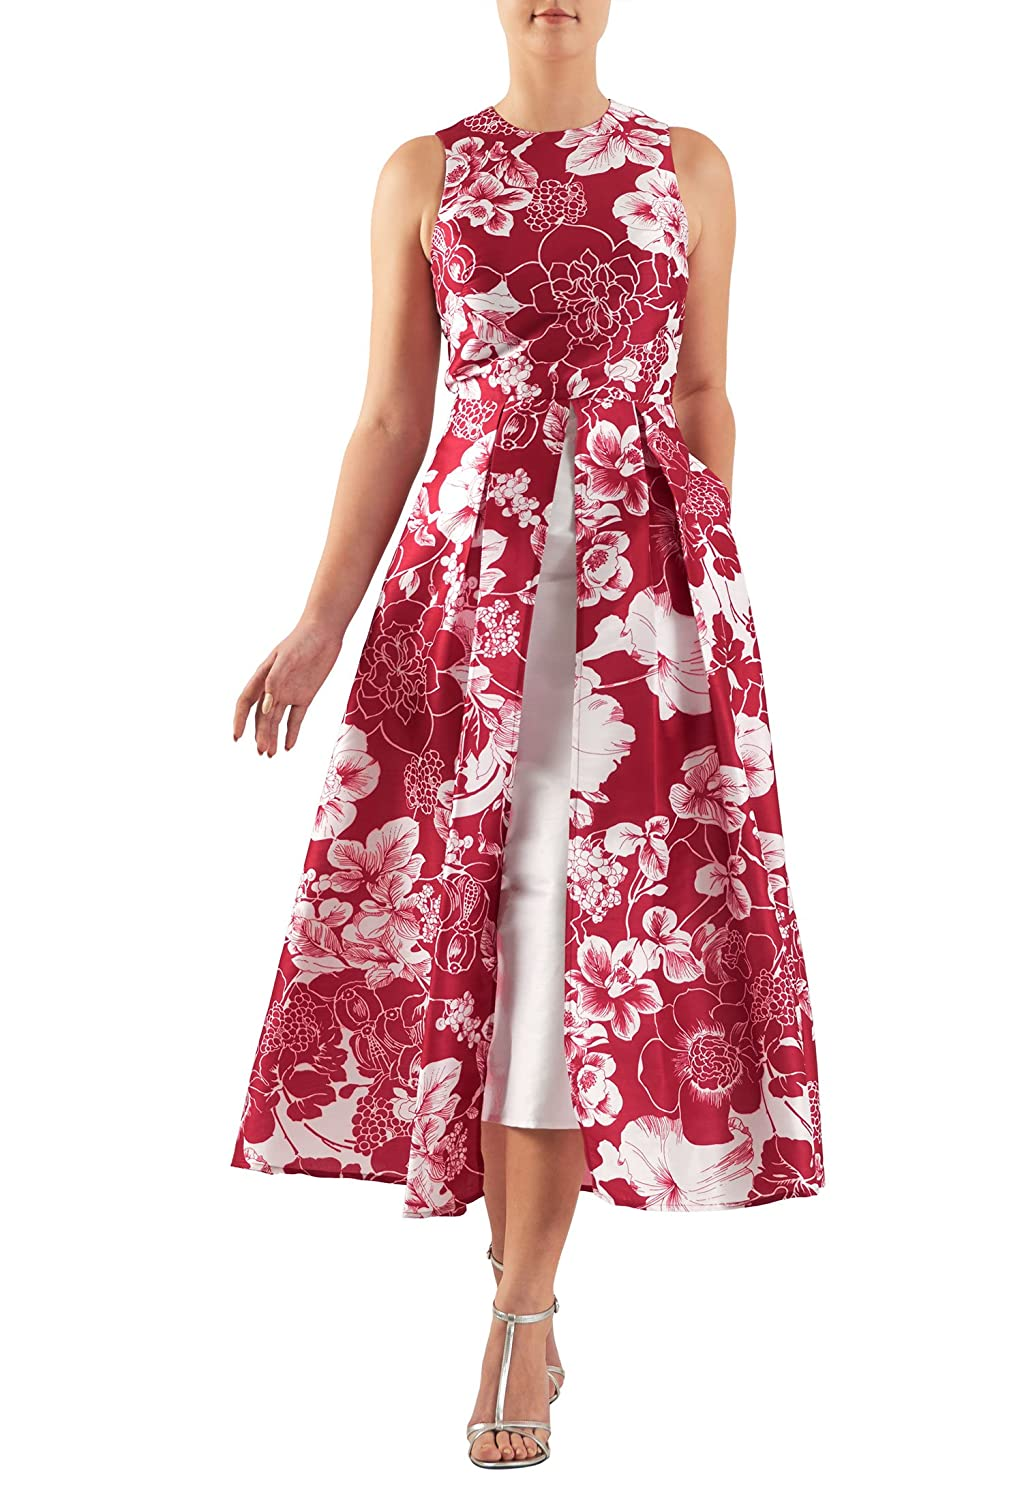 Vintage 50s Dresses: 8 Classic Retro Styles eShakti Womens Floral print dupioni inset front dress $66.95 AT vintagedancer.com